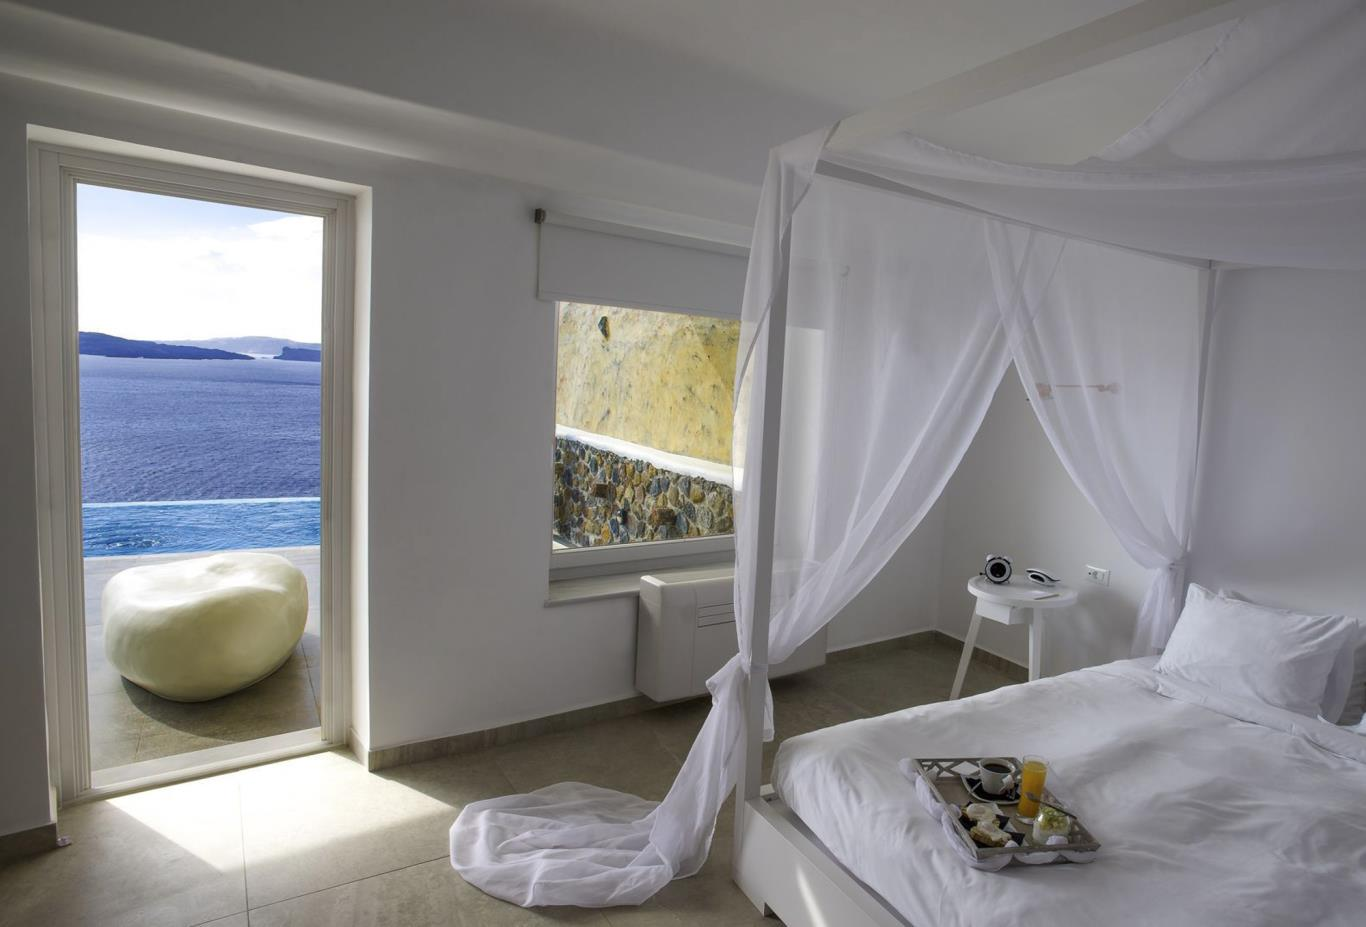 Infinity Suite bedroom